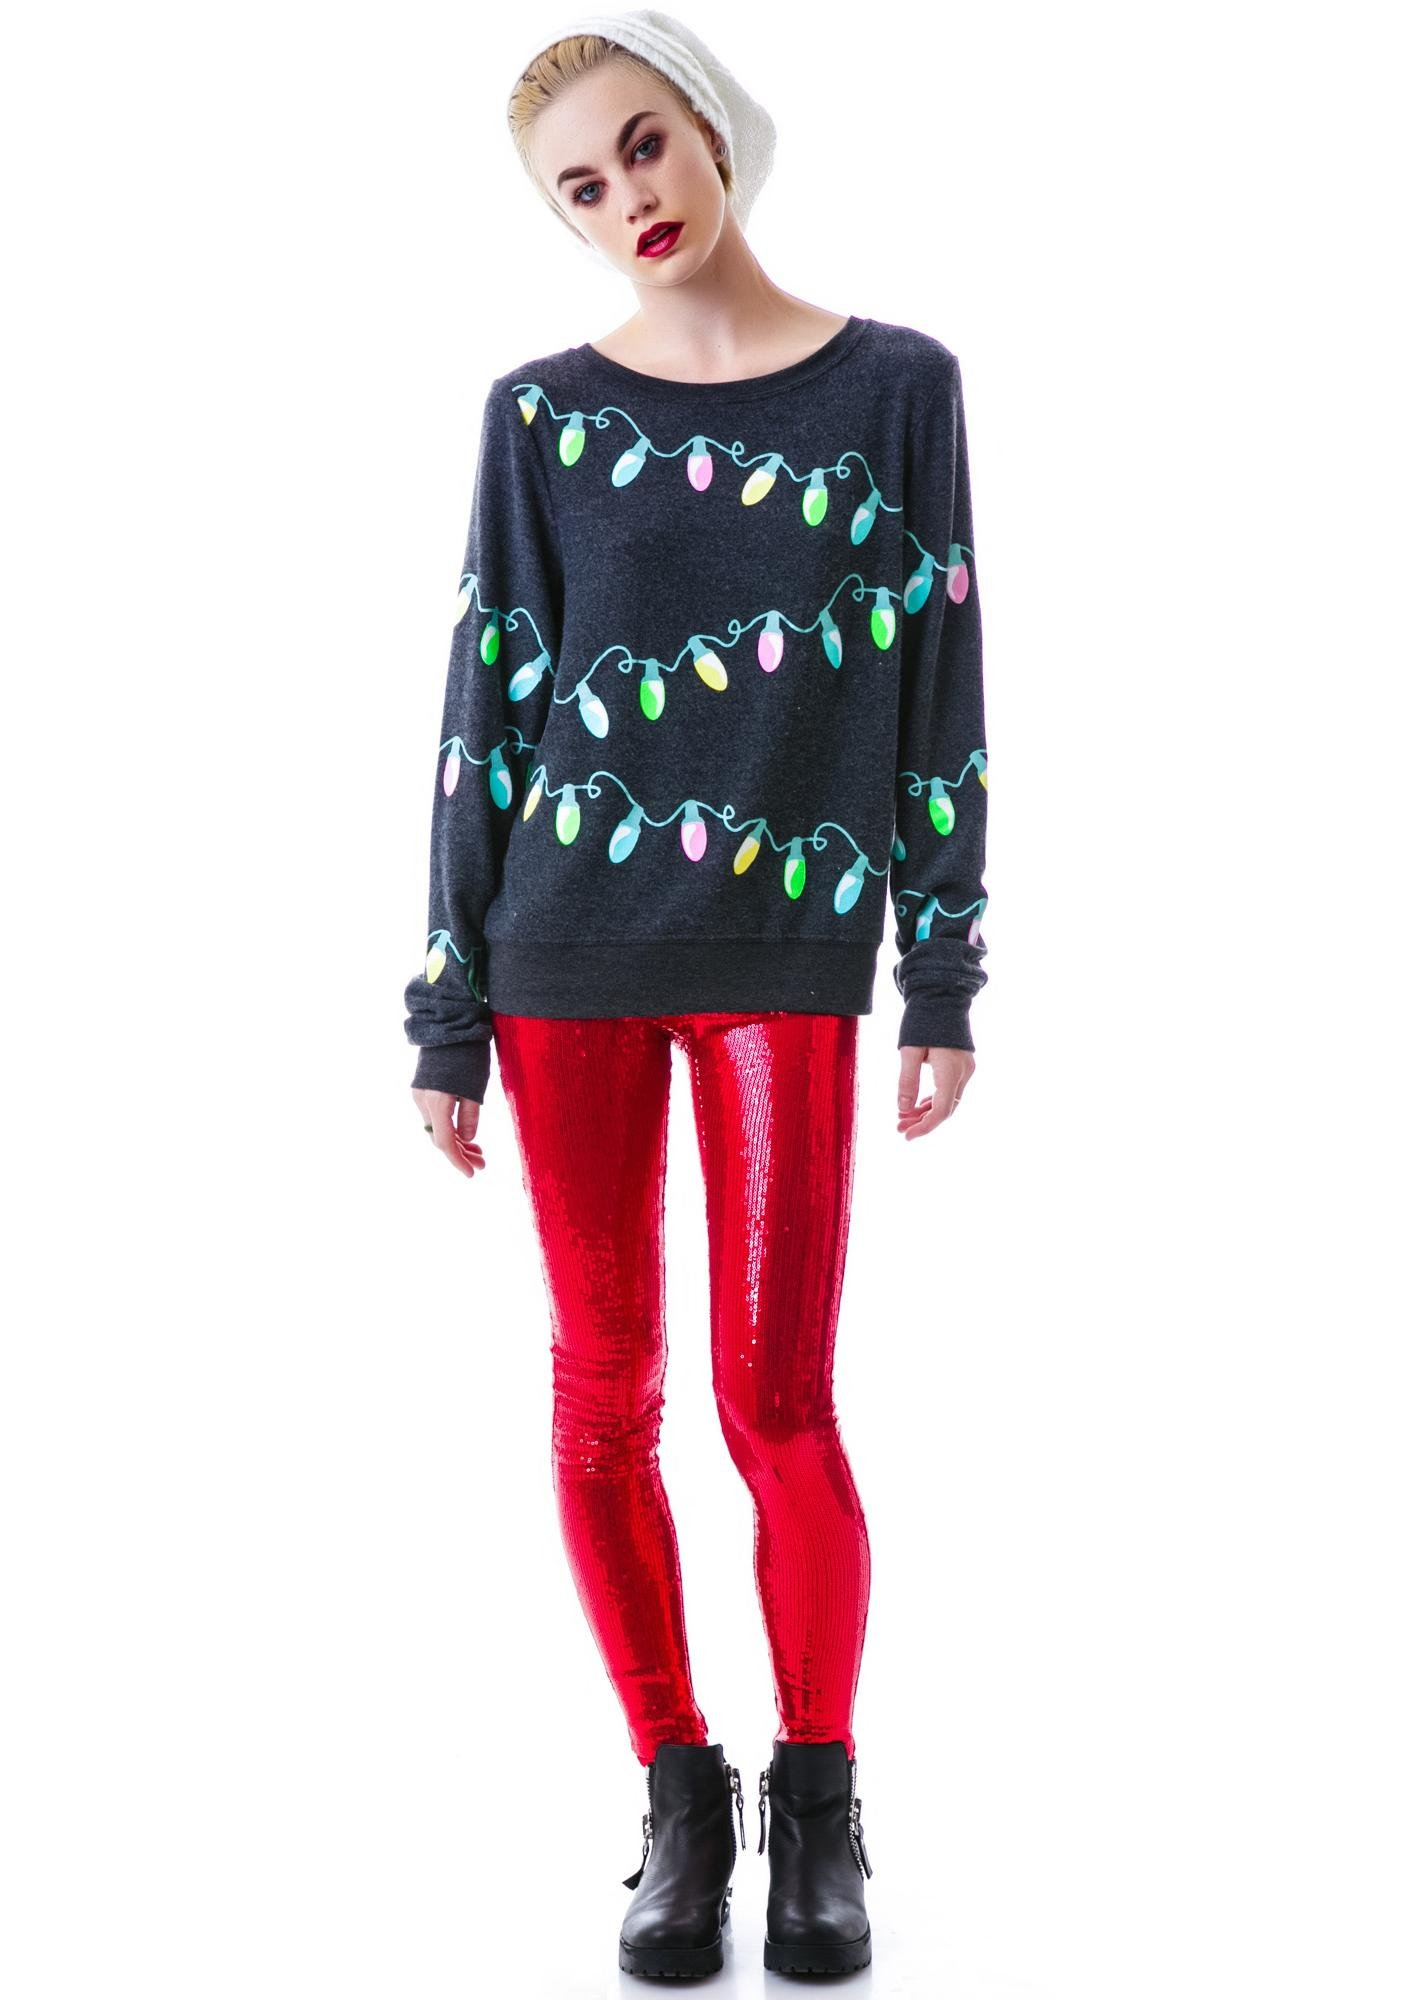 Wildfox Couture Glowing Lights Baggy Beach Jumper